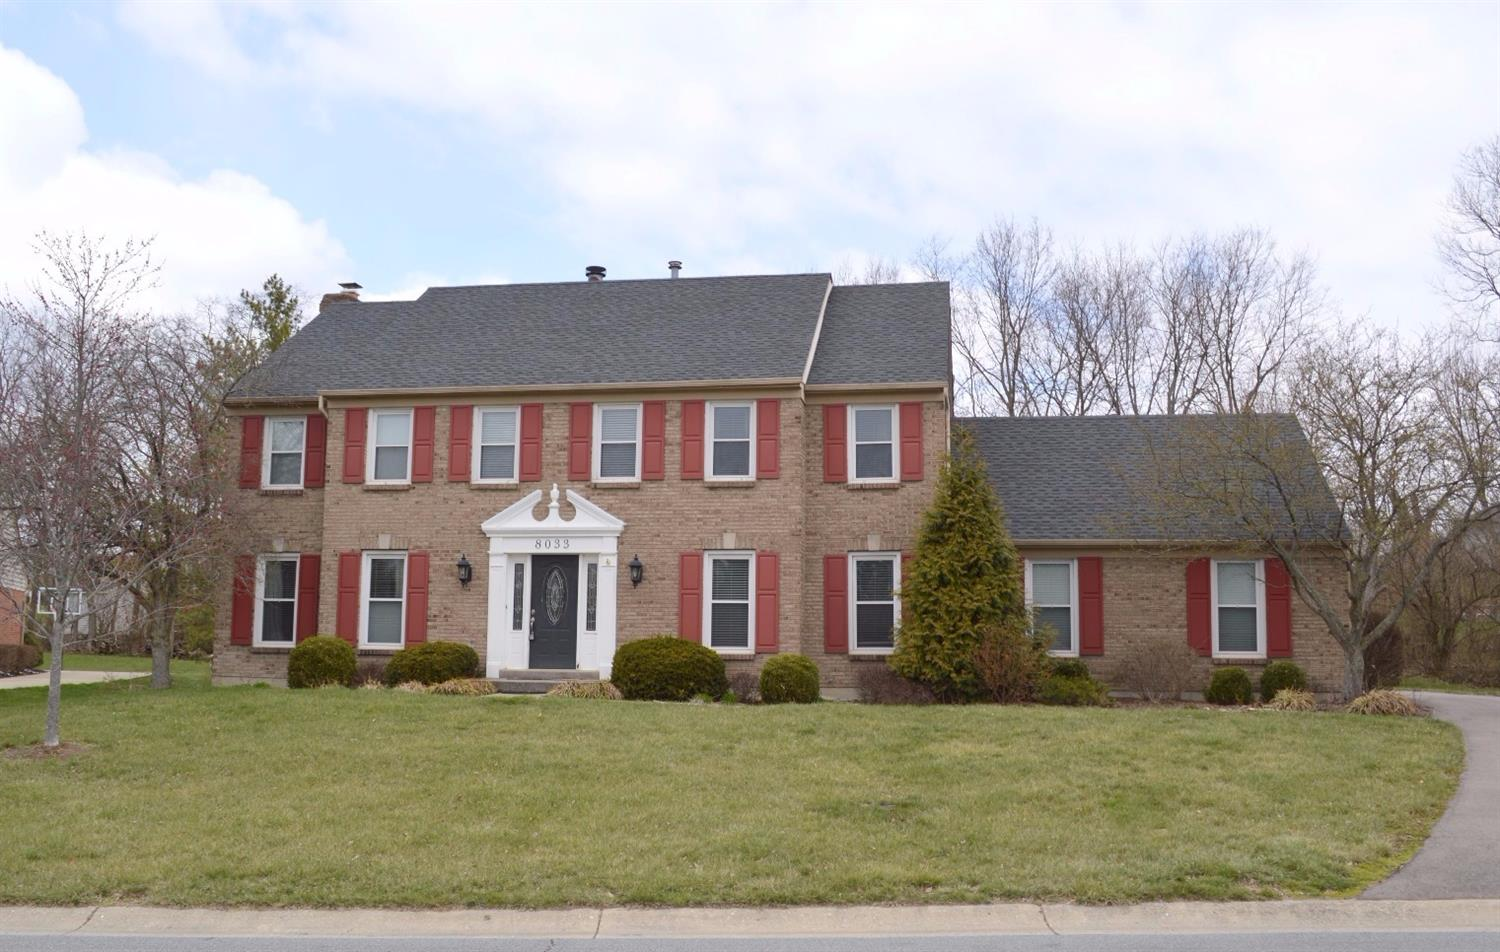 8033 Old Stable Court, West Chester, OH 45069